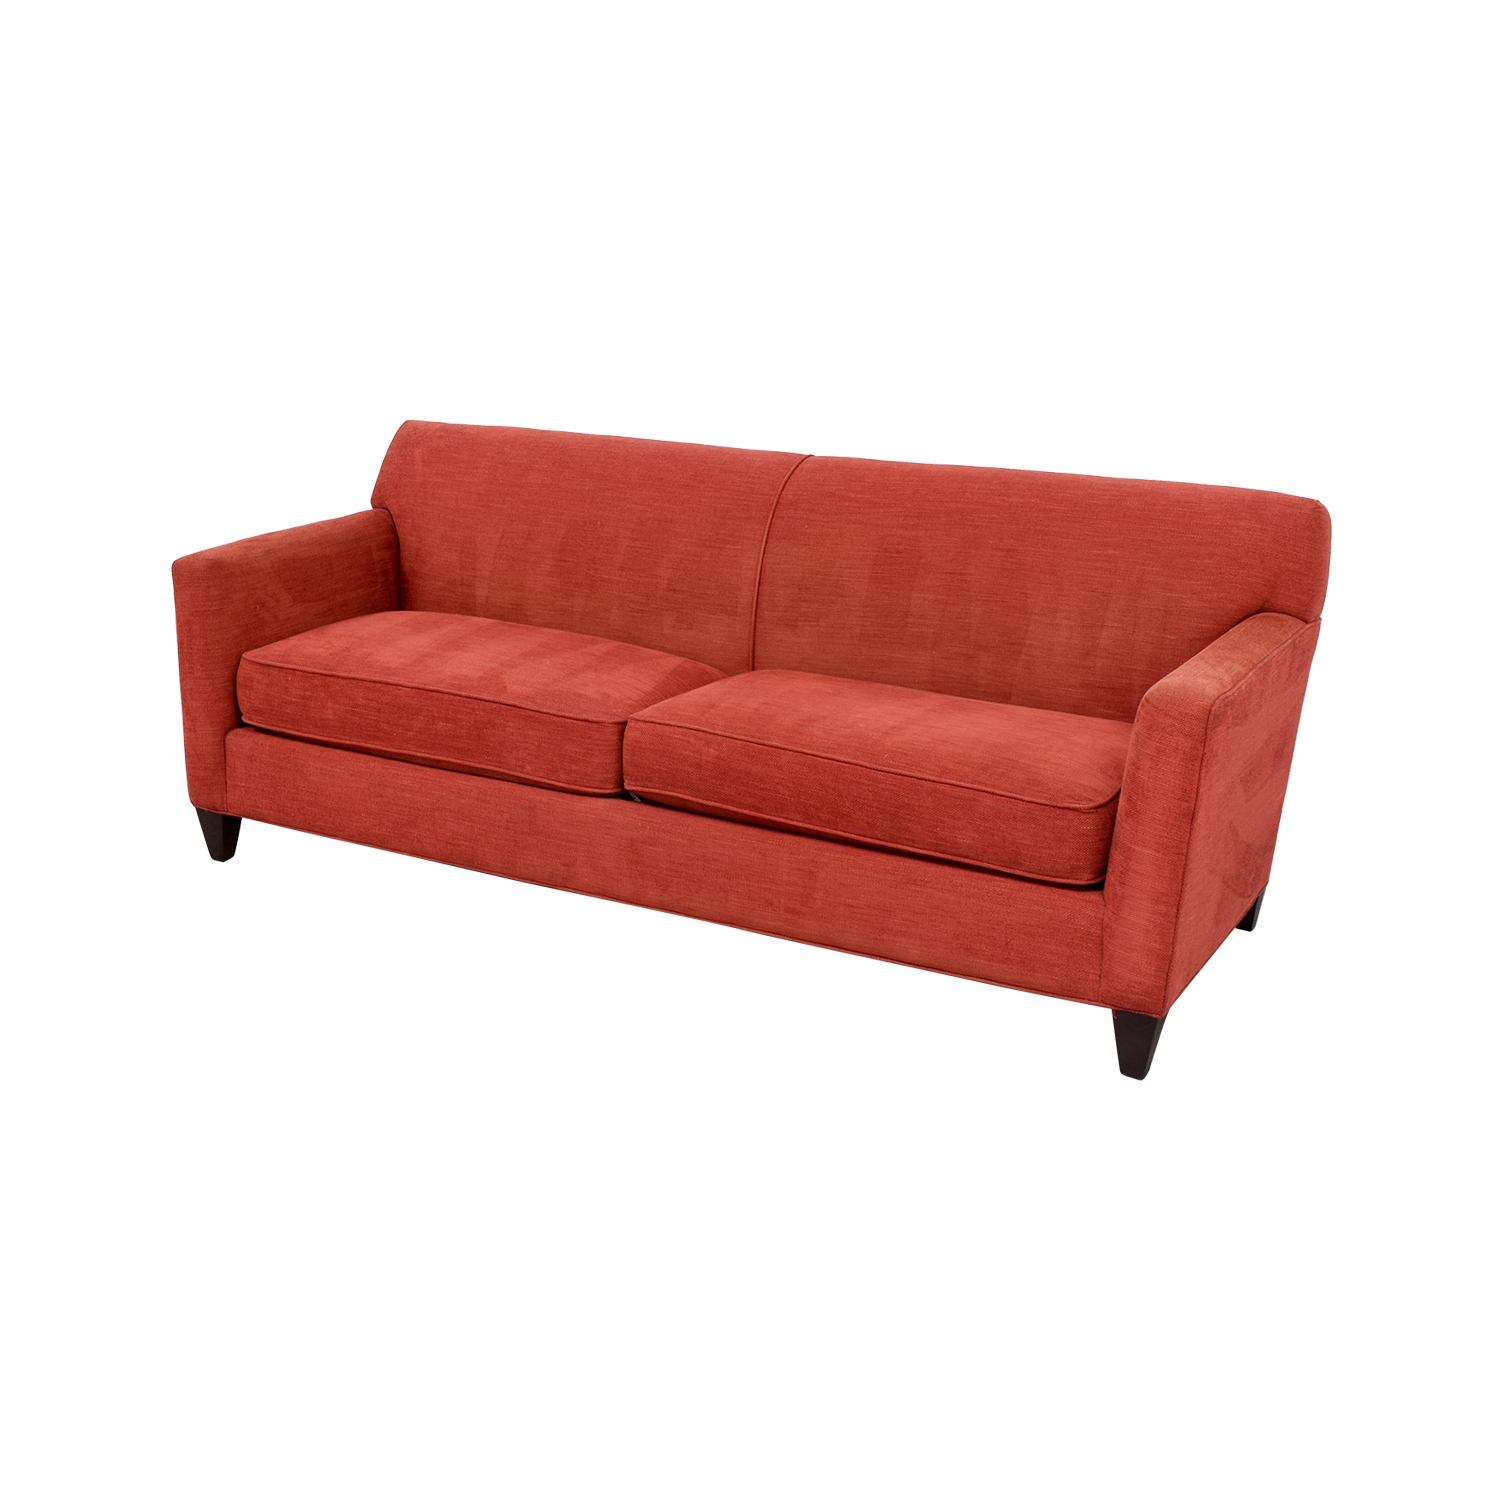 Urban Sofa Palermo Sofa Bed Red Paige Microsuede Full Size Sofa Bed Red The